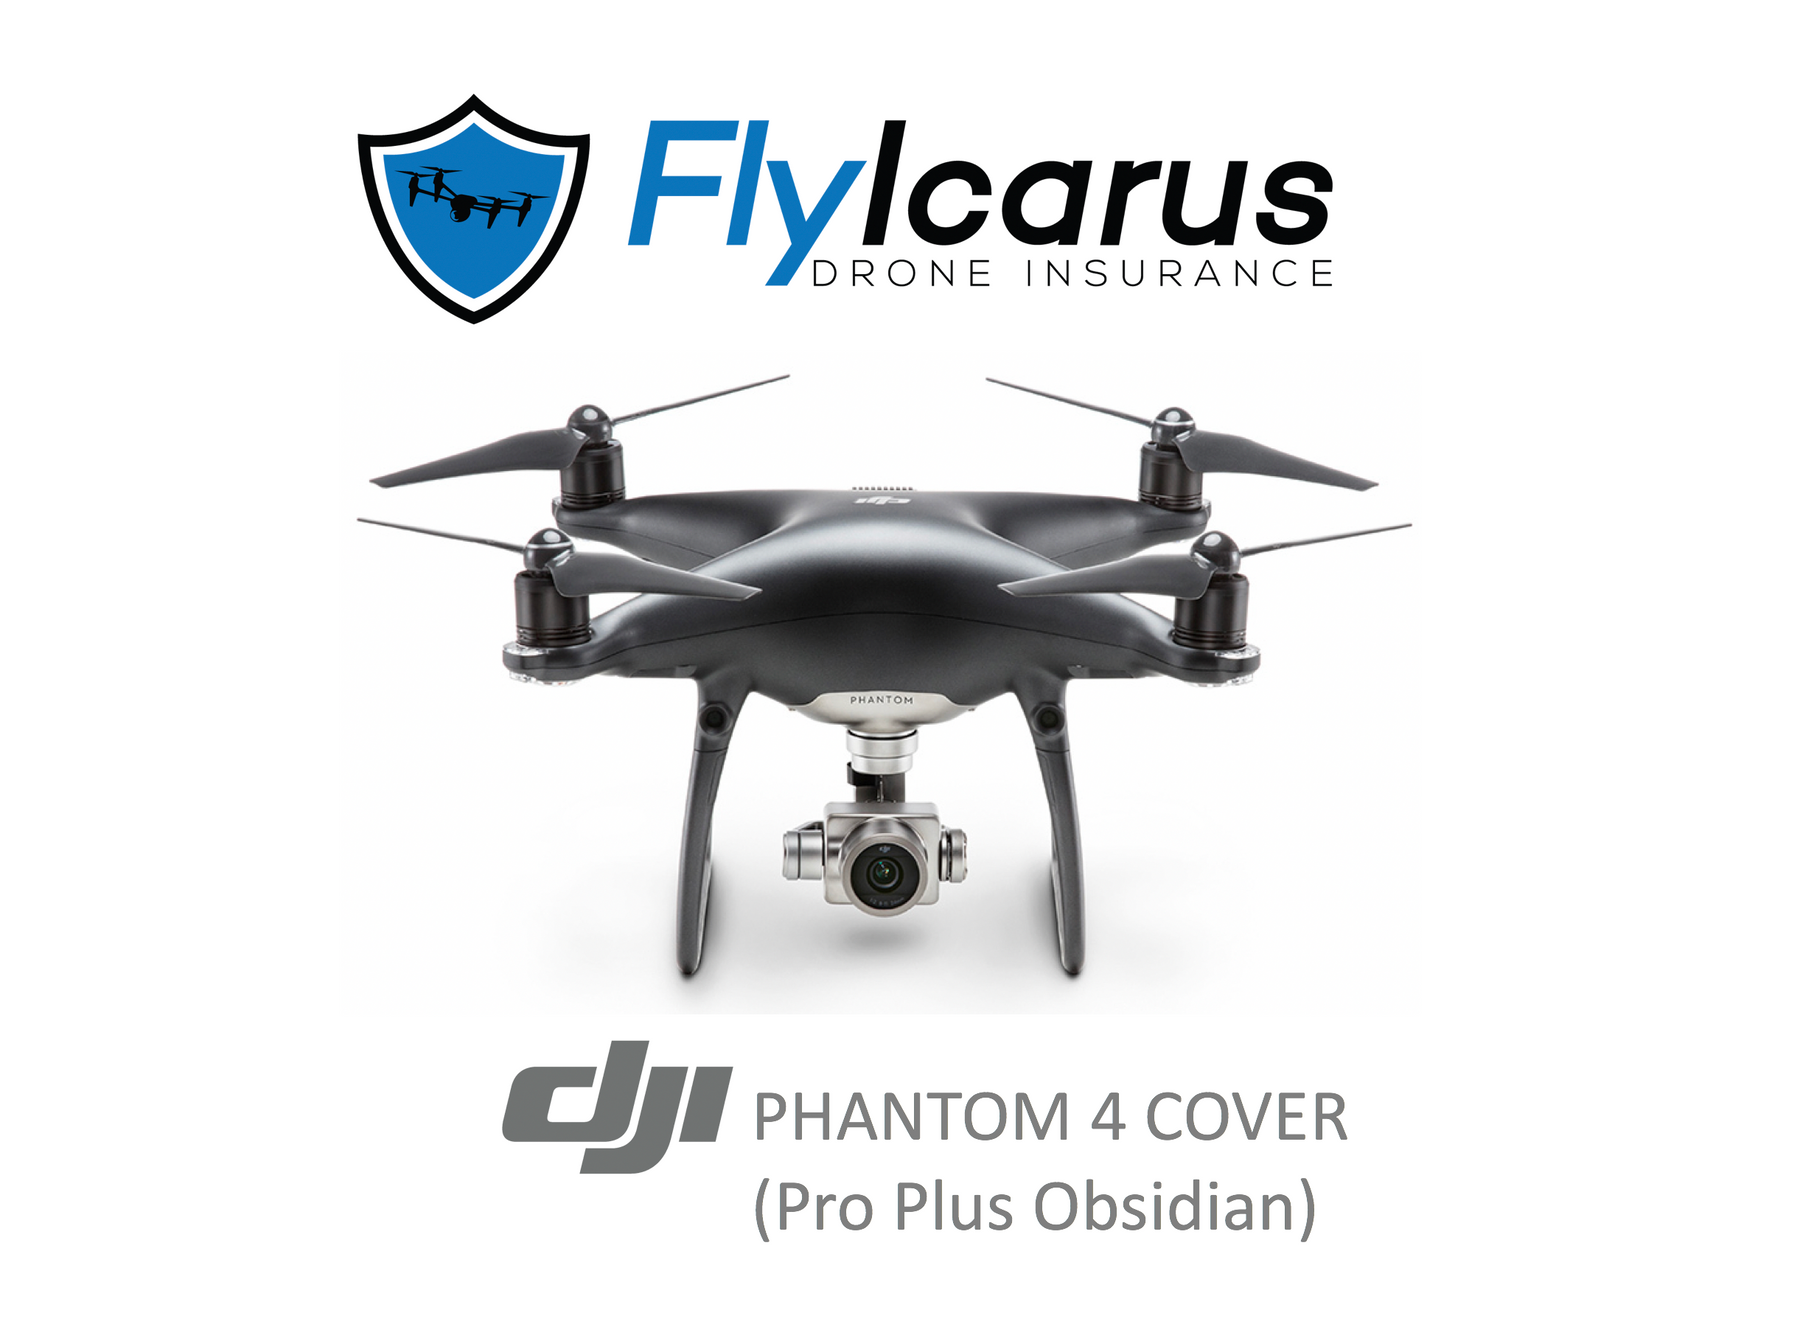 DJI Phantom 4 Pro Plus Obsidian Hobby Drone Insurance - Annual Cover - FlyIcarus Drone Insurance